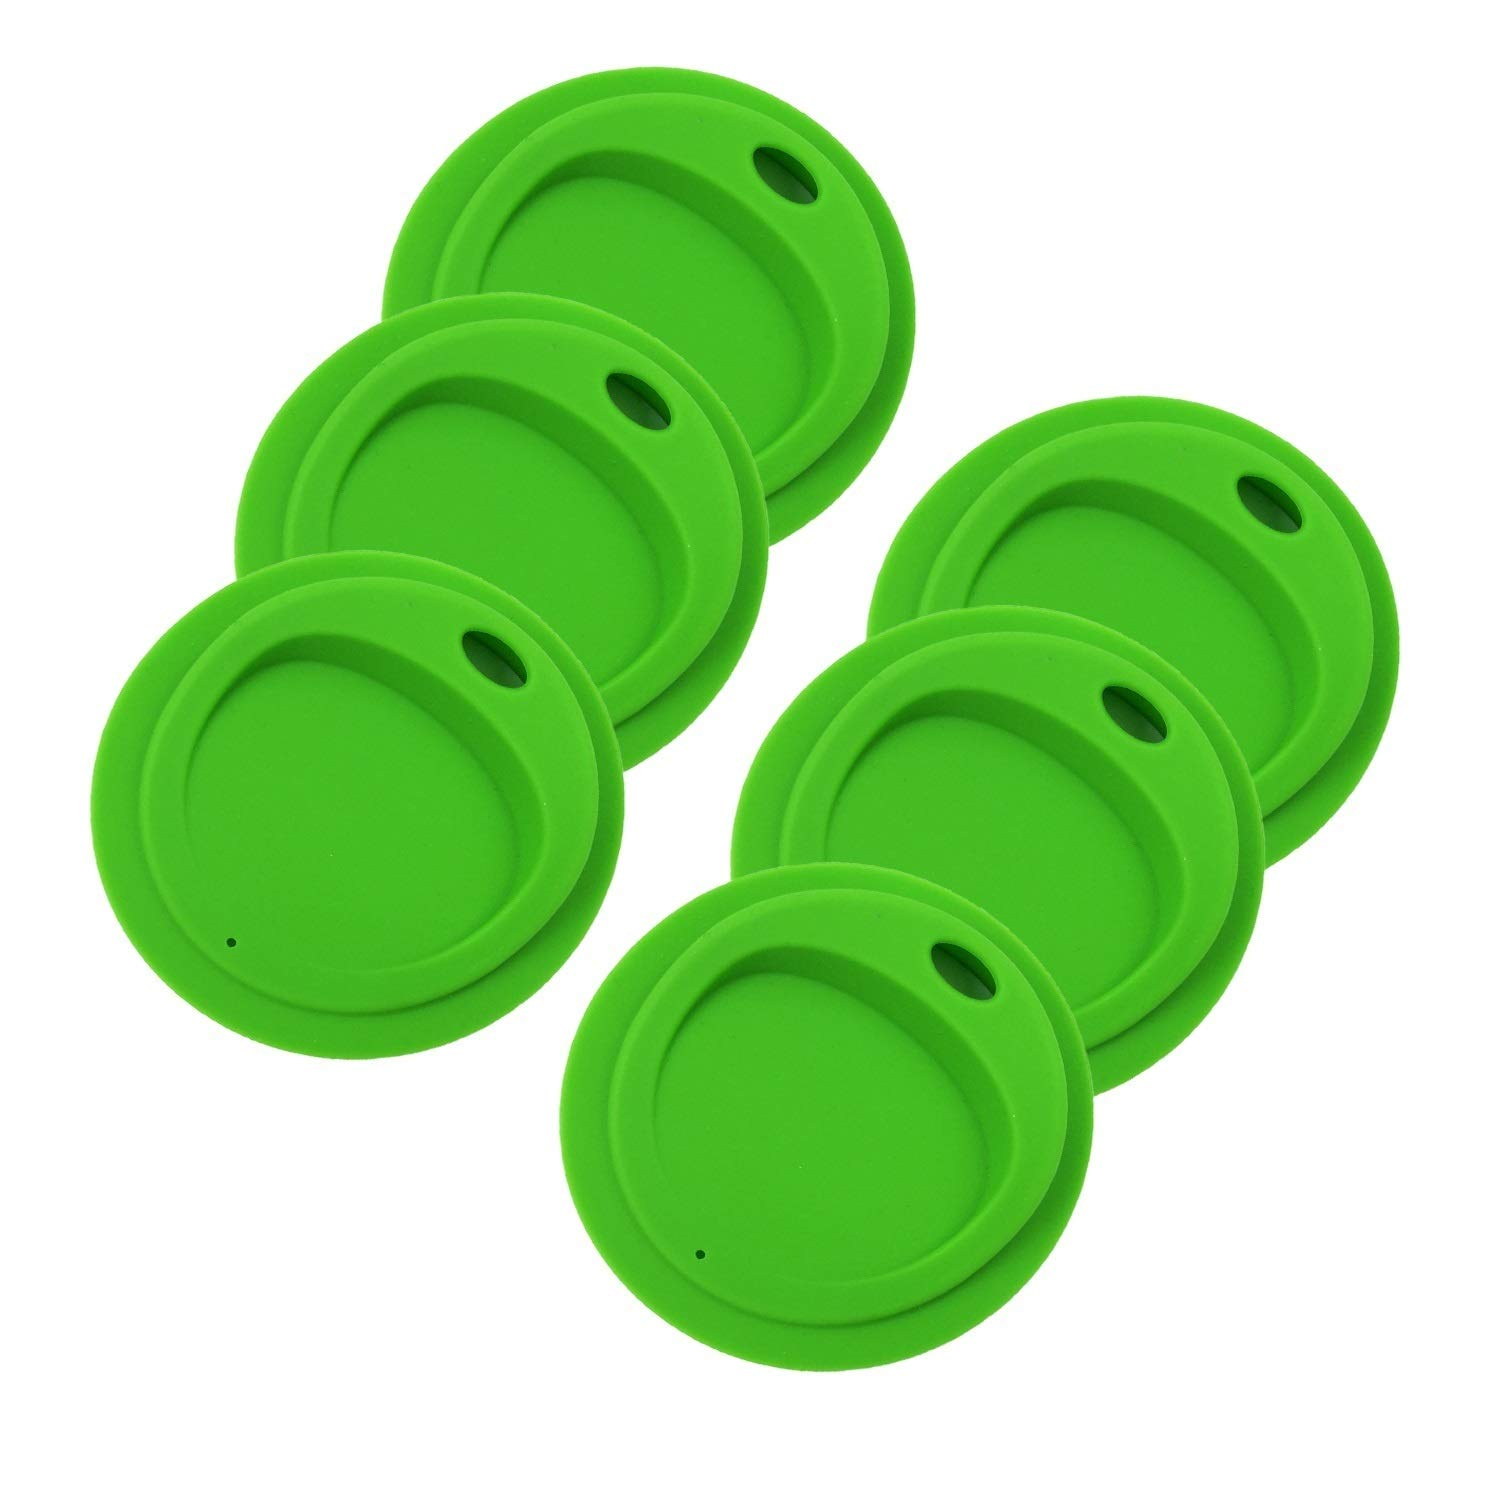 THINKCHANCES Reusable Food Grade and BPA Free Silicone Oval Straw Hole Sip Coffee Juice Drinking Lid for Mason, Ball, Canning Jars (Wide Mouth, Green),6 Pack